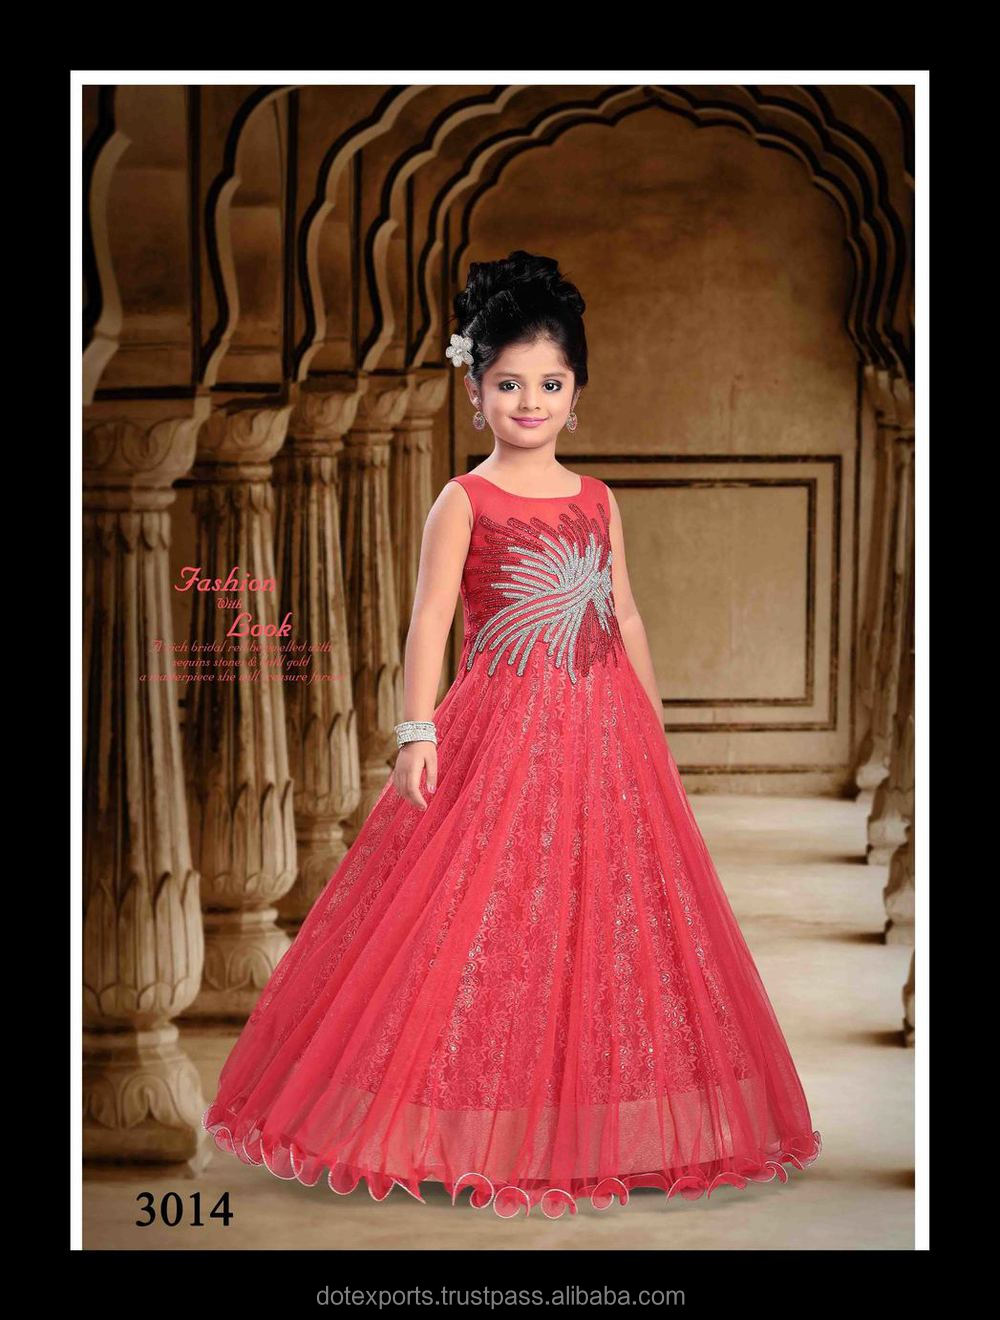 Party Wear Red Frock/gown Designs For Girls - Buy Kids Frocks Neck ...